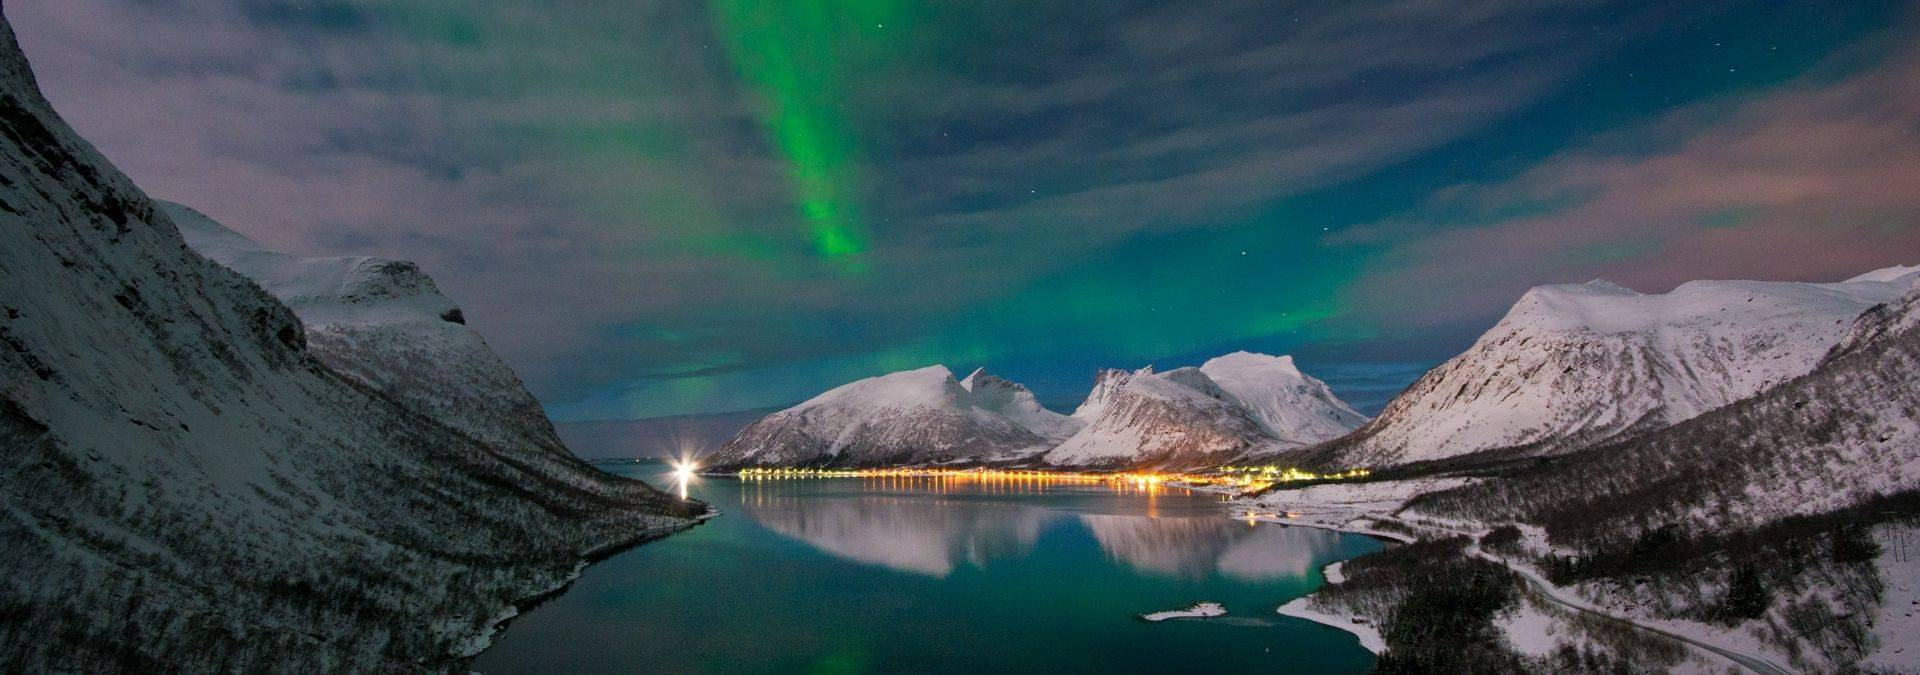 Northern Lights Senja Photo Credit Reiner Schaufler 3